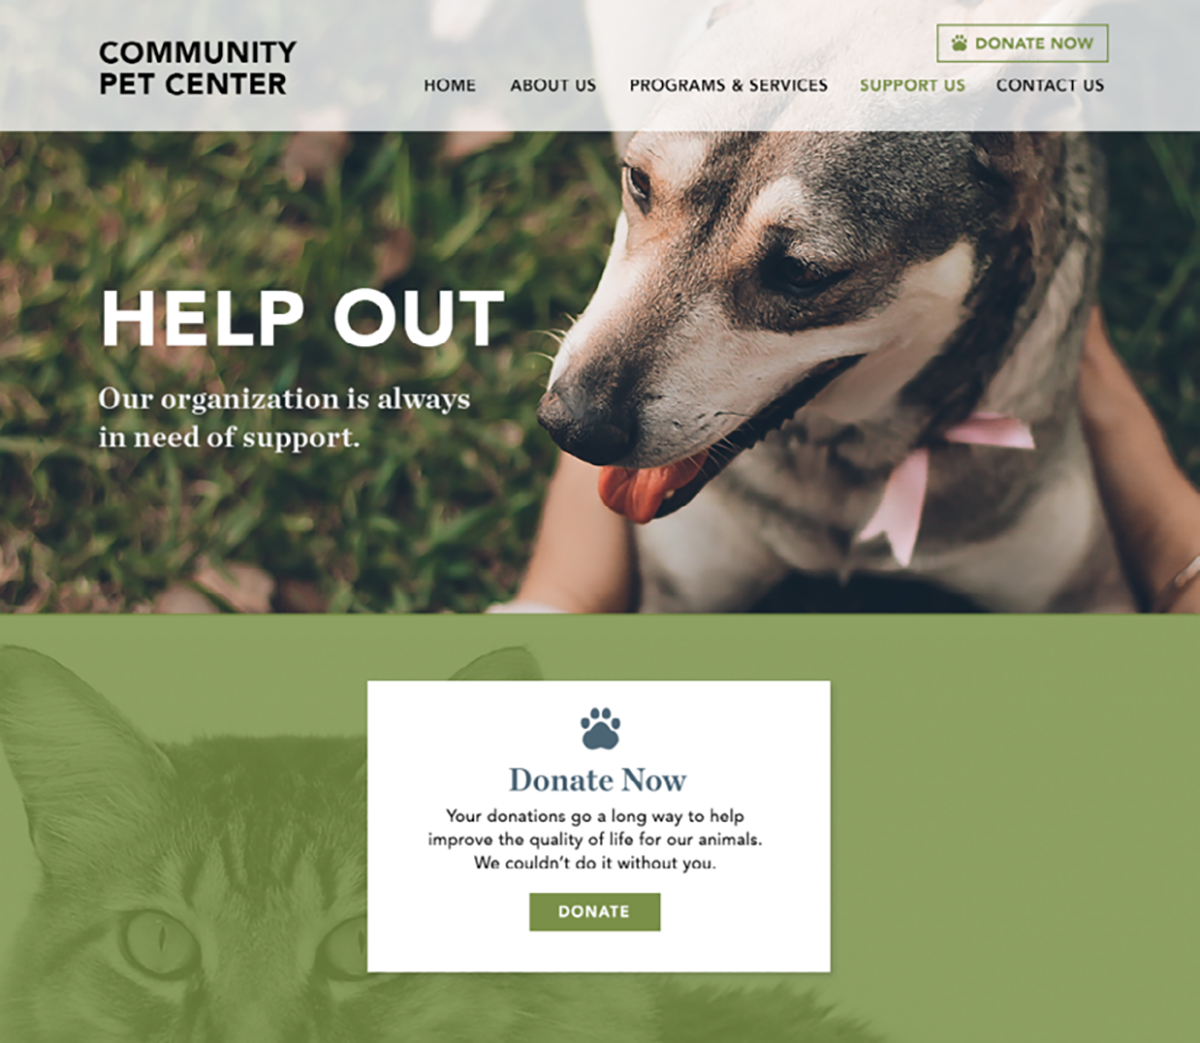 example of a Support Us page built using Constant Contact